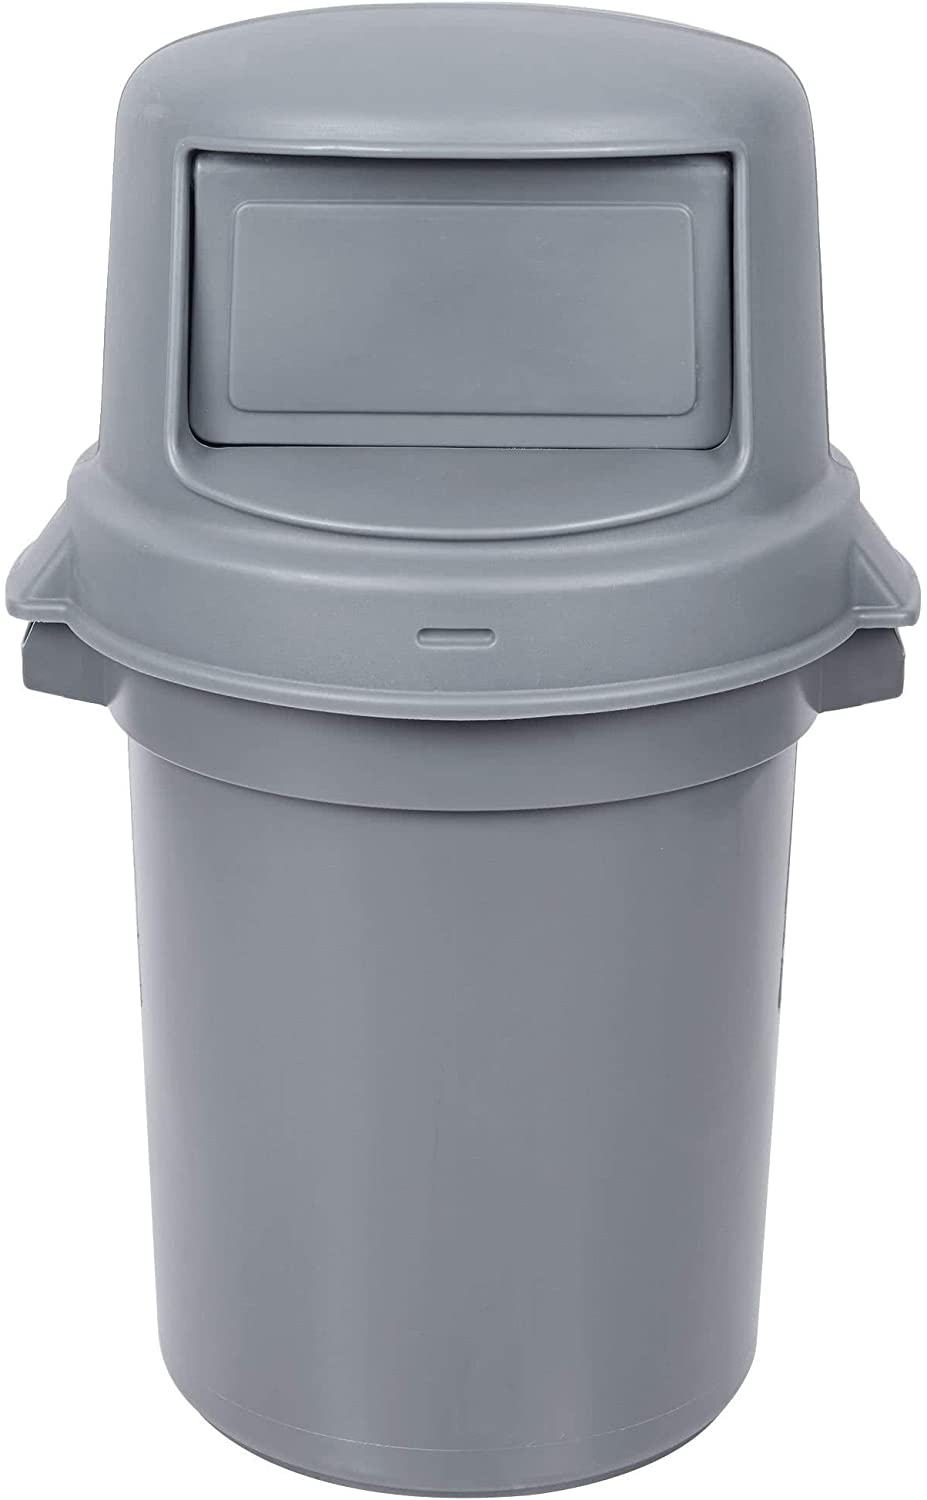 2 Pack! 32 Gallon / 121 Liters Gray/Black Trash Can with Dome Top Lid. Trash Container. Trash Bucket. Garbage Bin. Waste Bin. Home Trash Can. Commercial Waste bin.